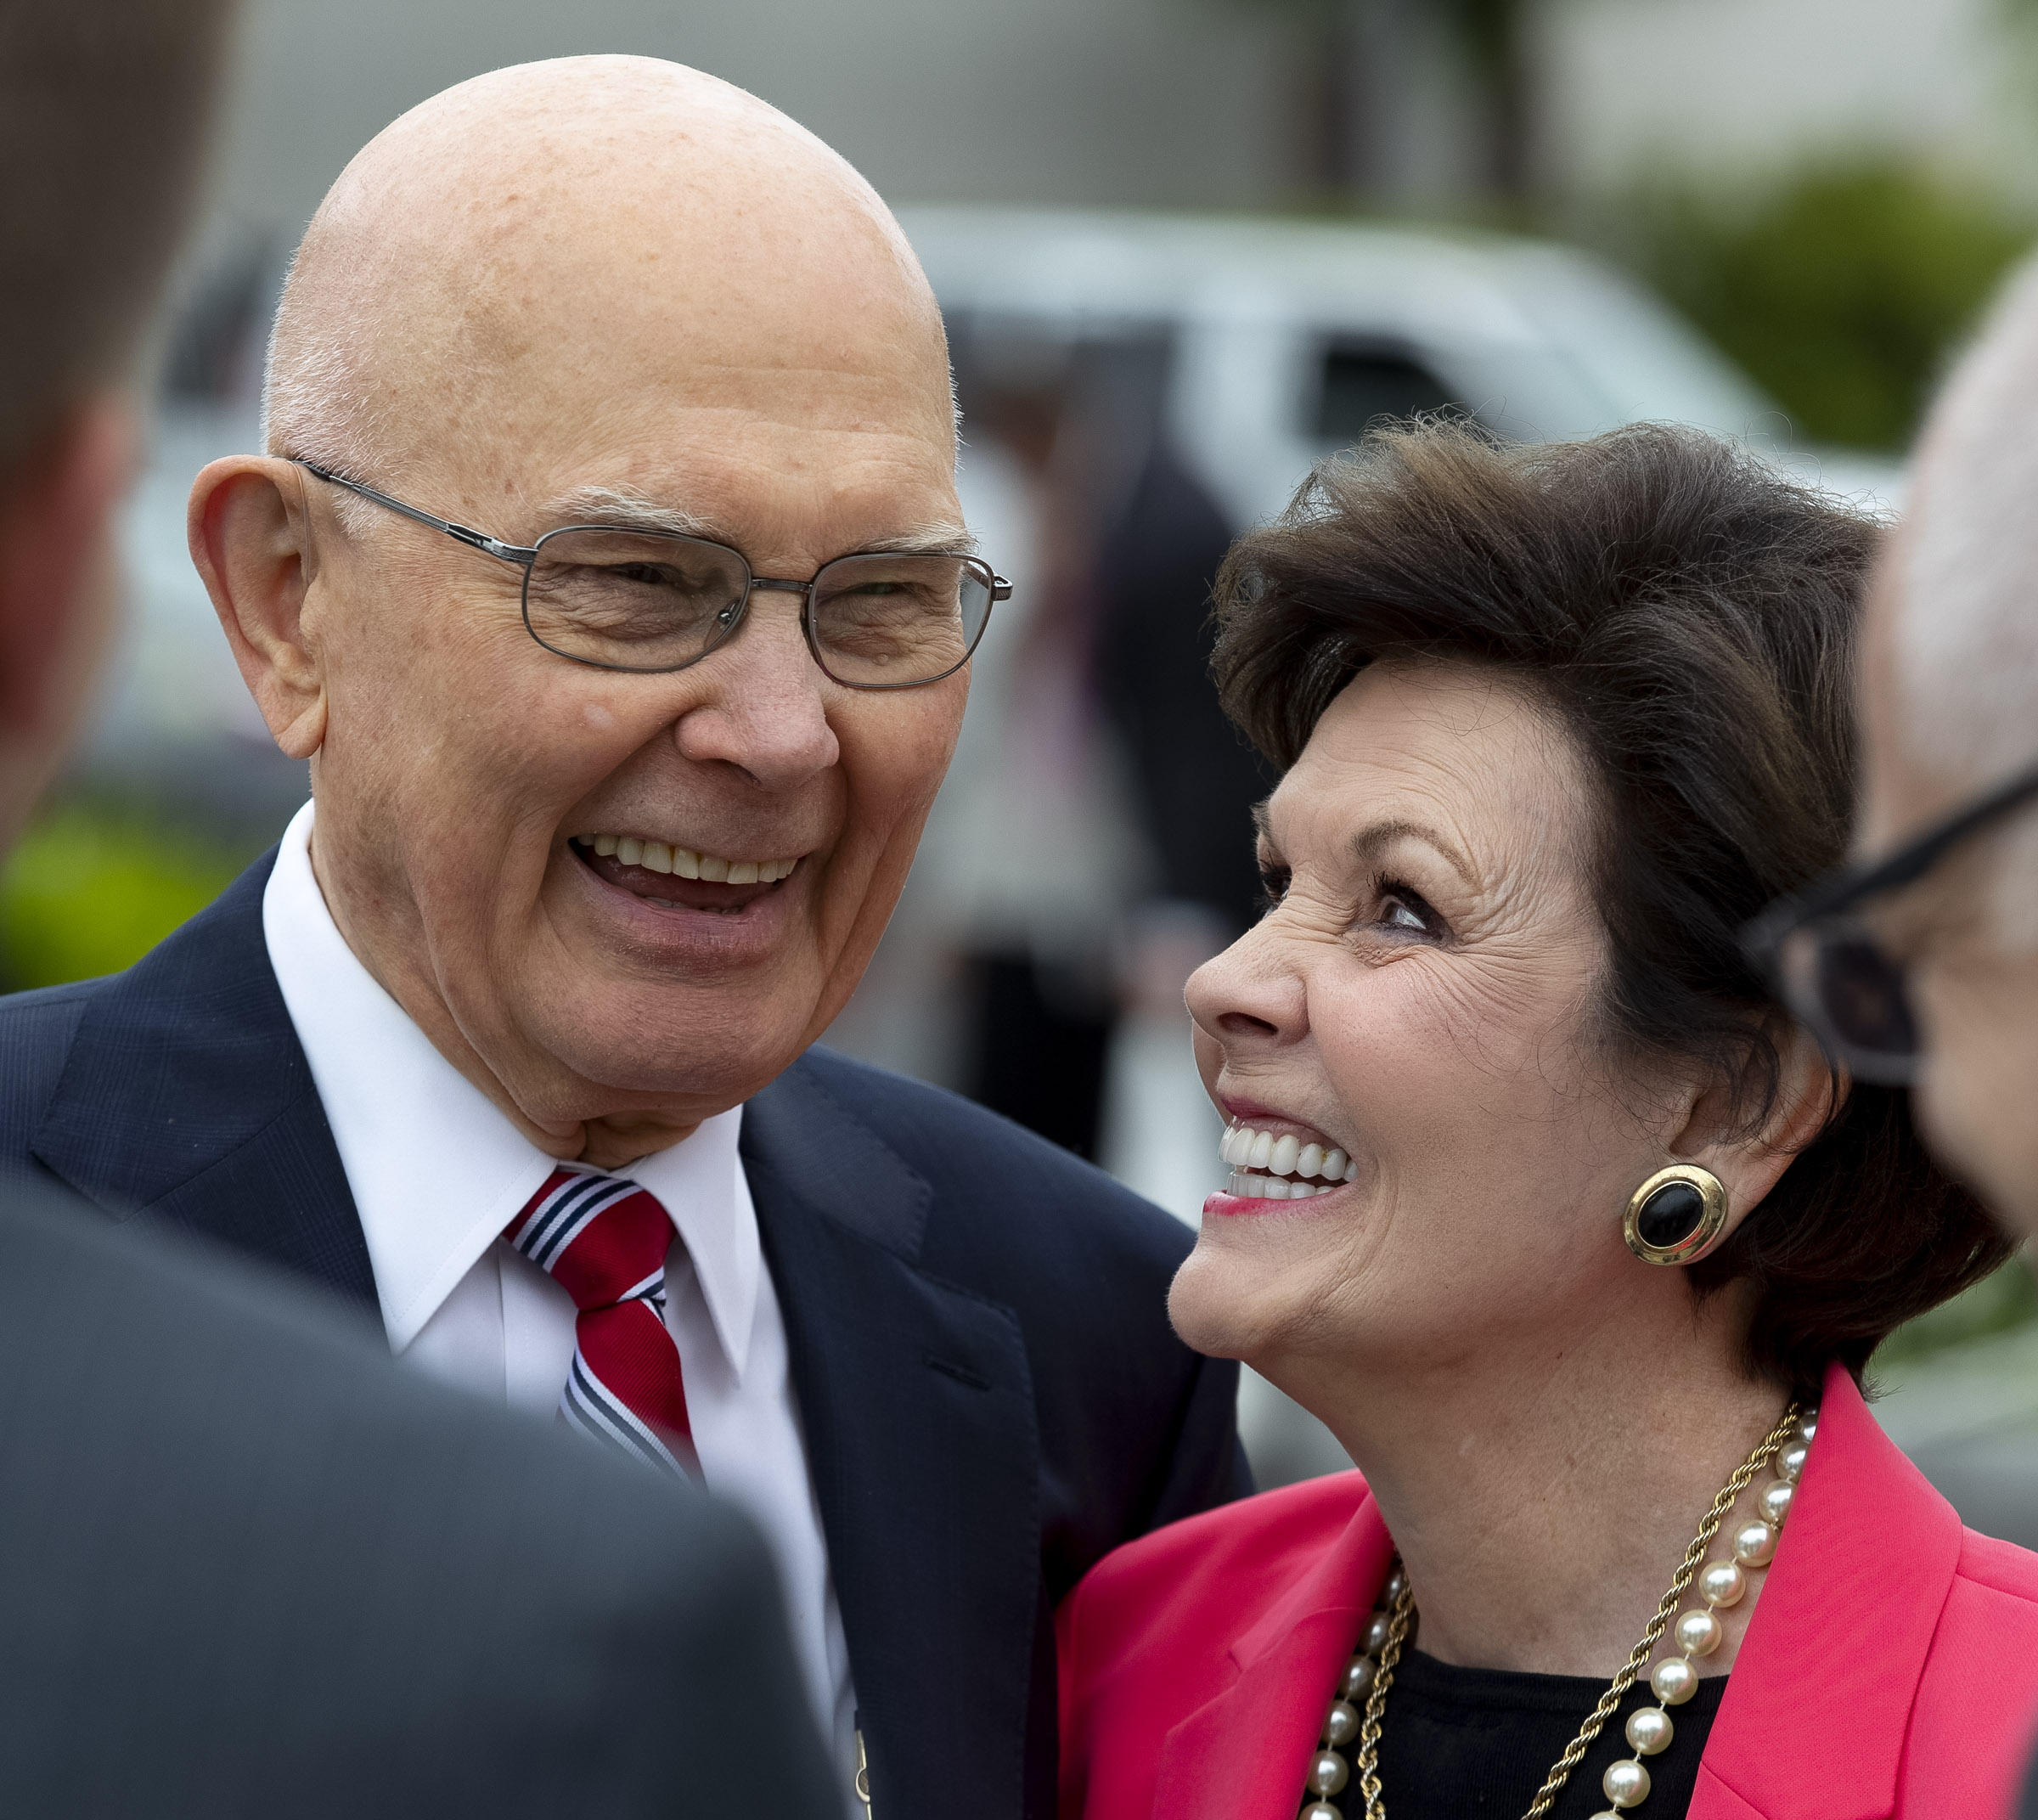 President Dallin H. Oaks, first counselor in the First Presidency, and his wife, Sister Kristen Oaks, smile as they talk about the beauty of the Oakland California Temple following a walk-through on Saturday, June 15, 2019.